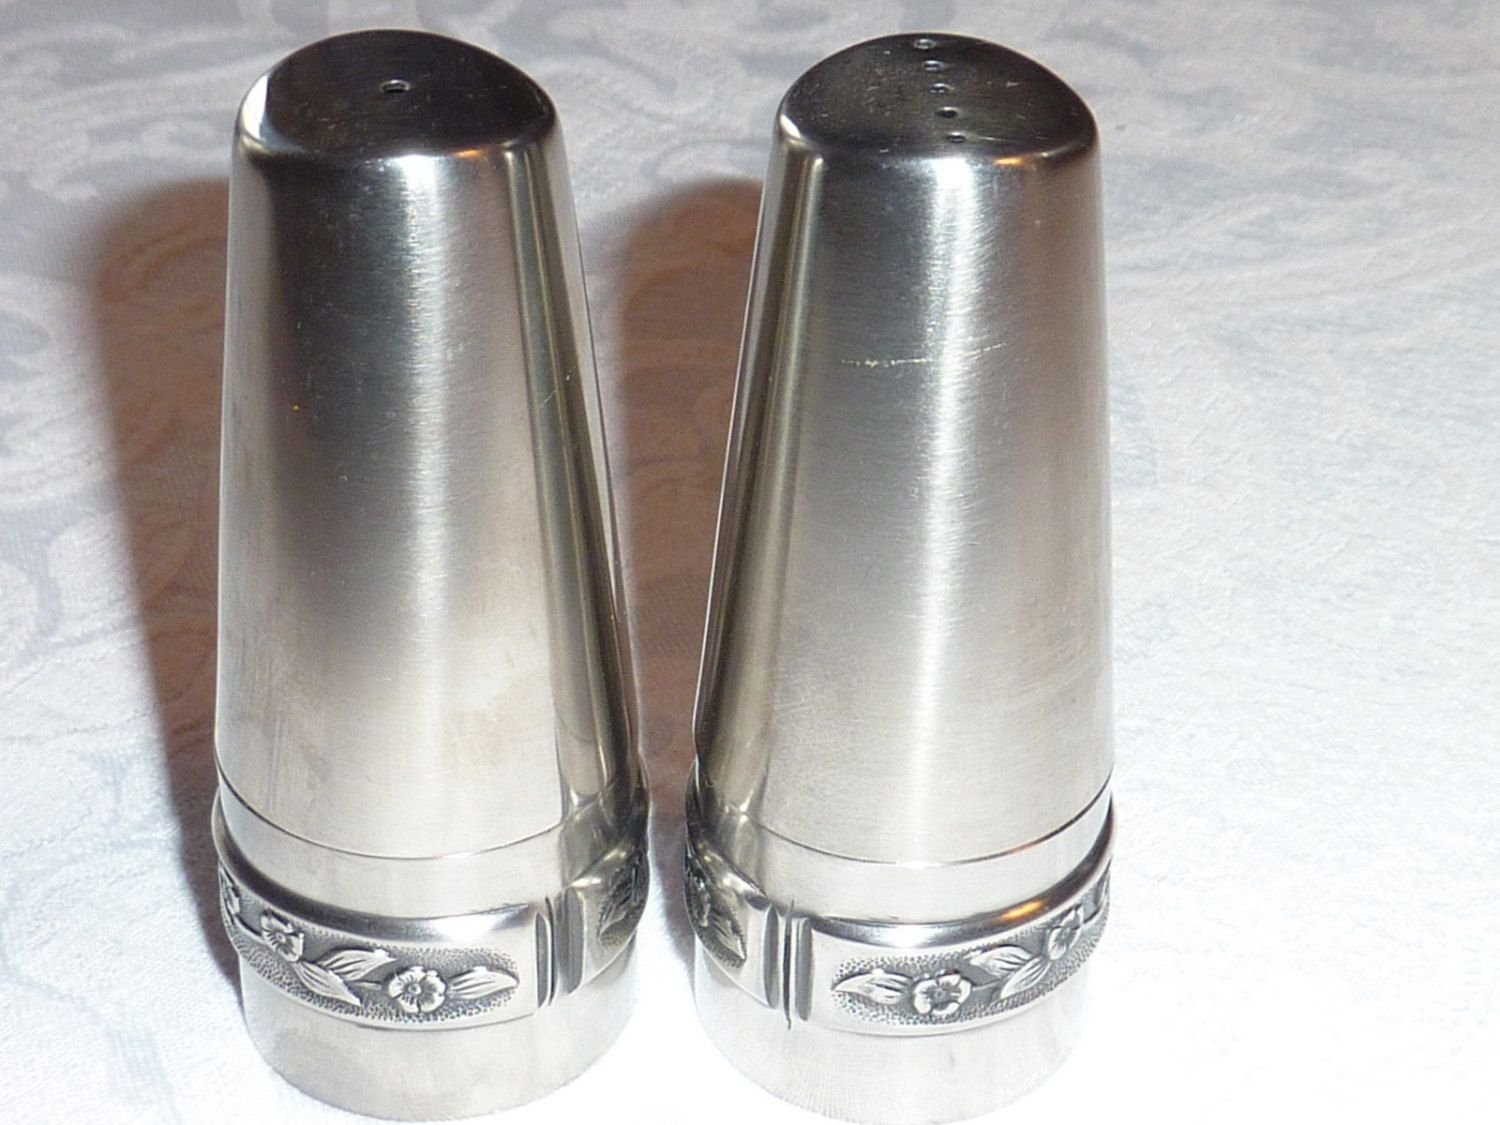 Vintage Stainless Steel S P Shakers By Rogers 18 8 Etsy Vintage Stainless Shakers Vintage